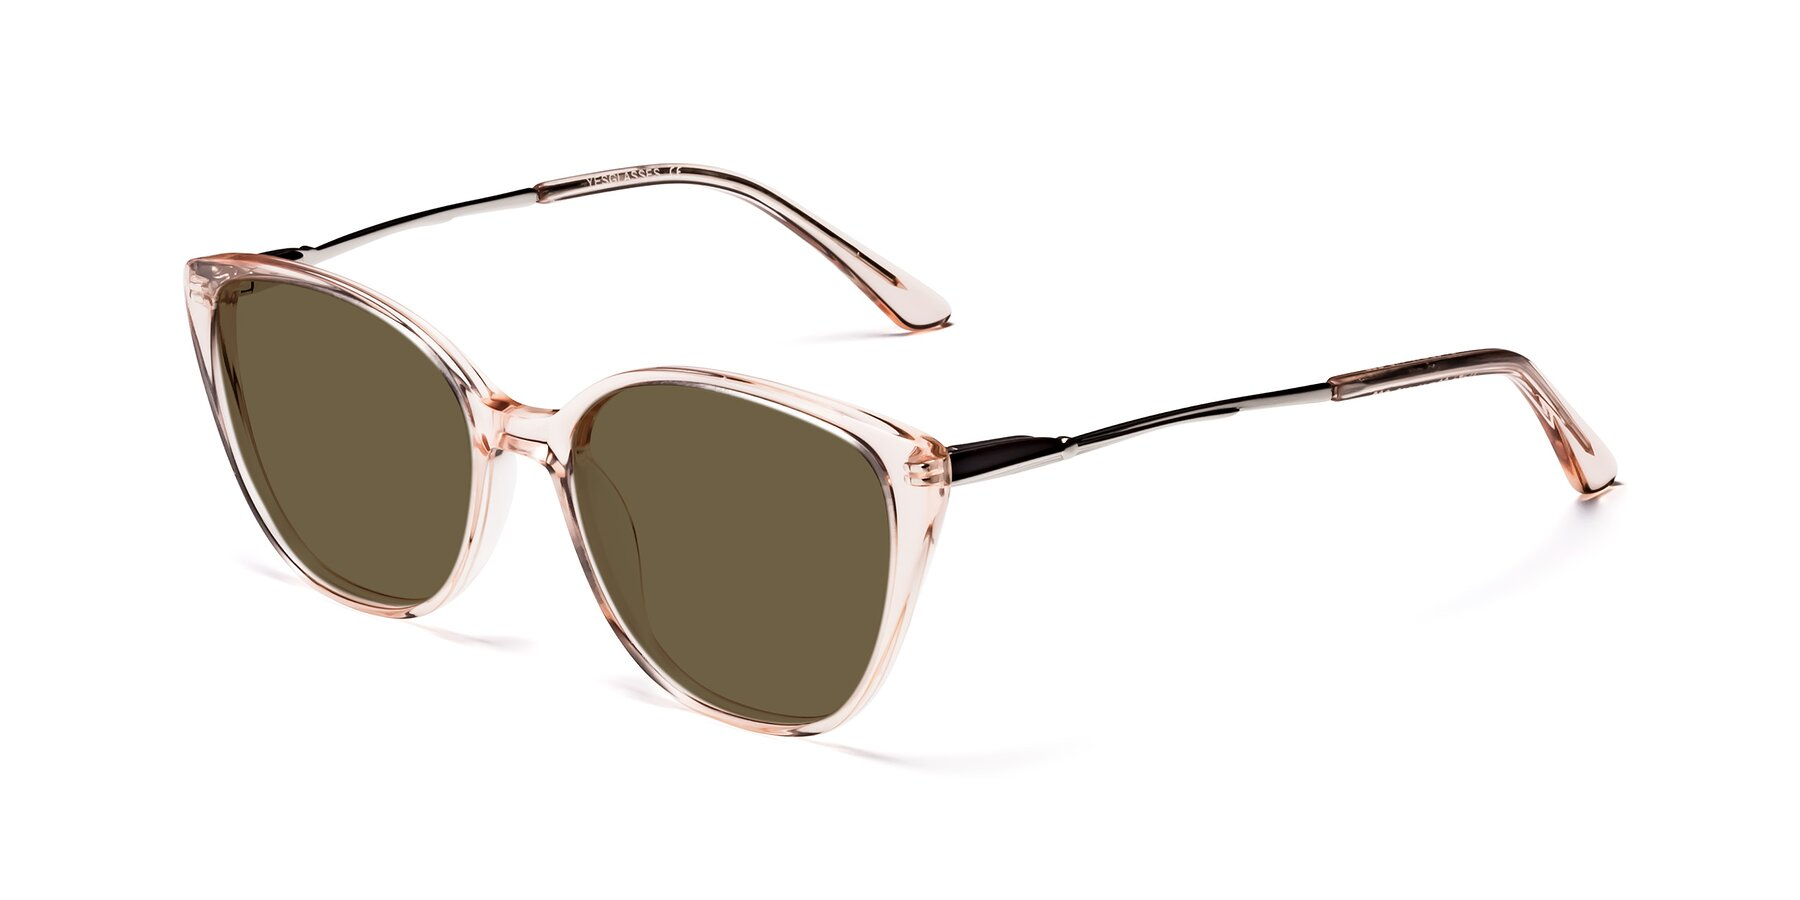 Angle of 17424 in Transparent Pink with Brown Polarized Lenses